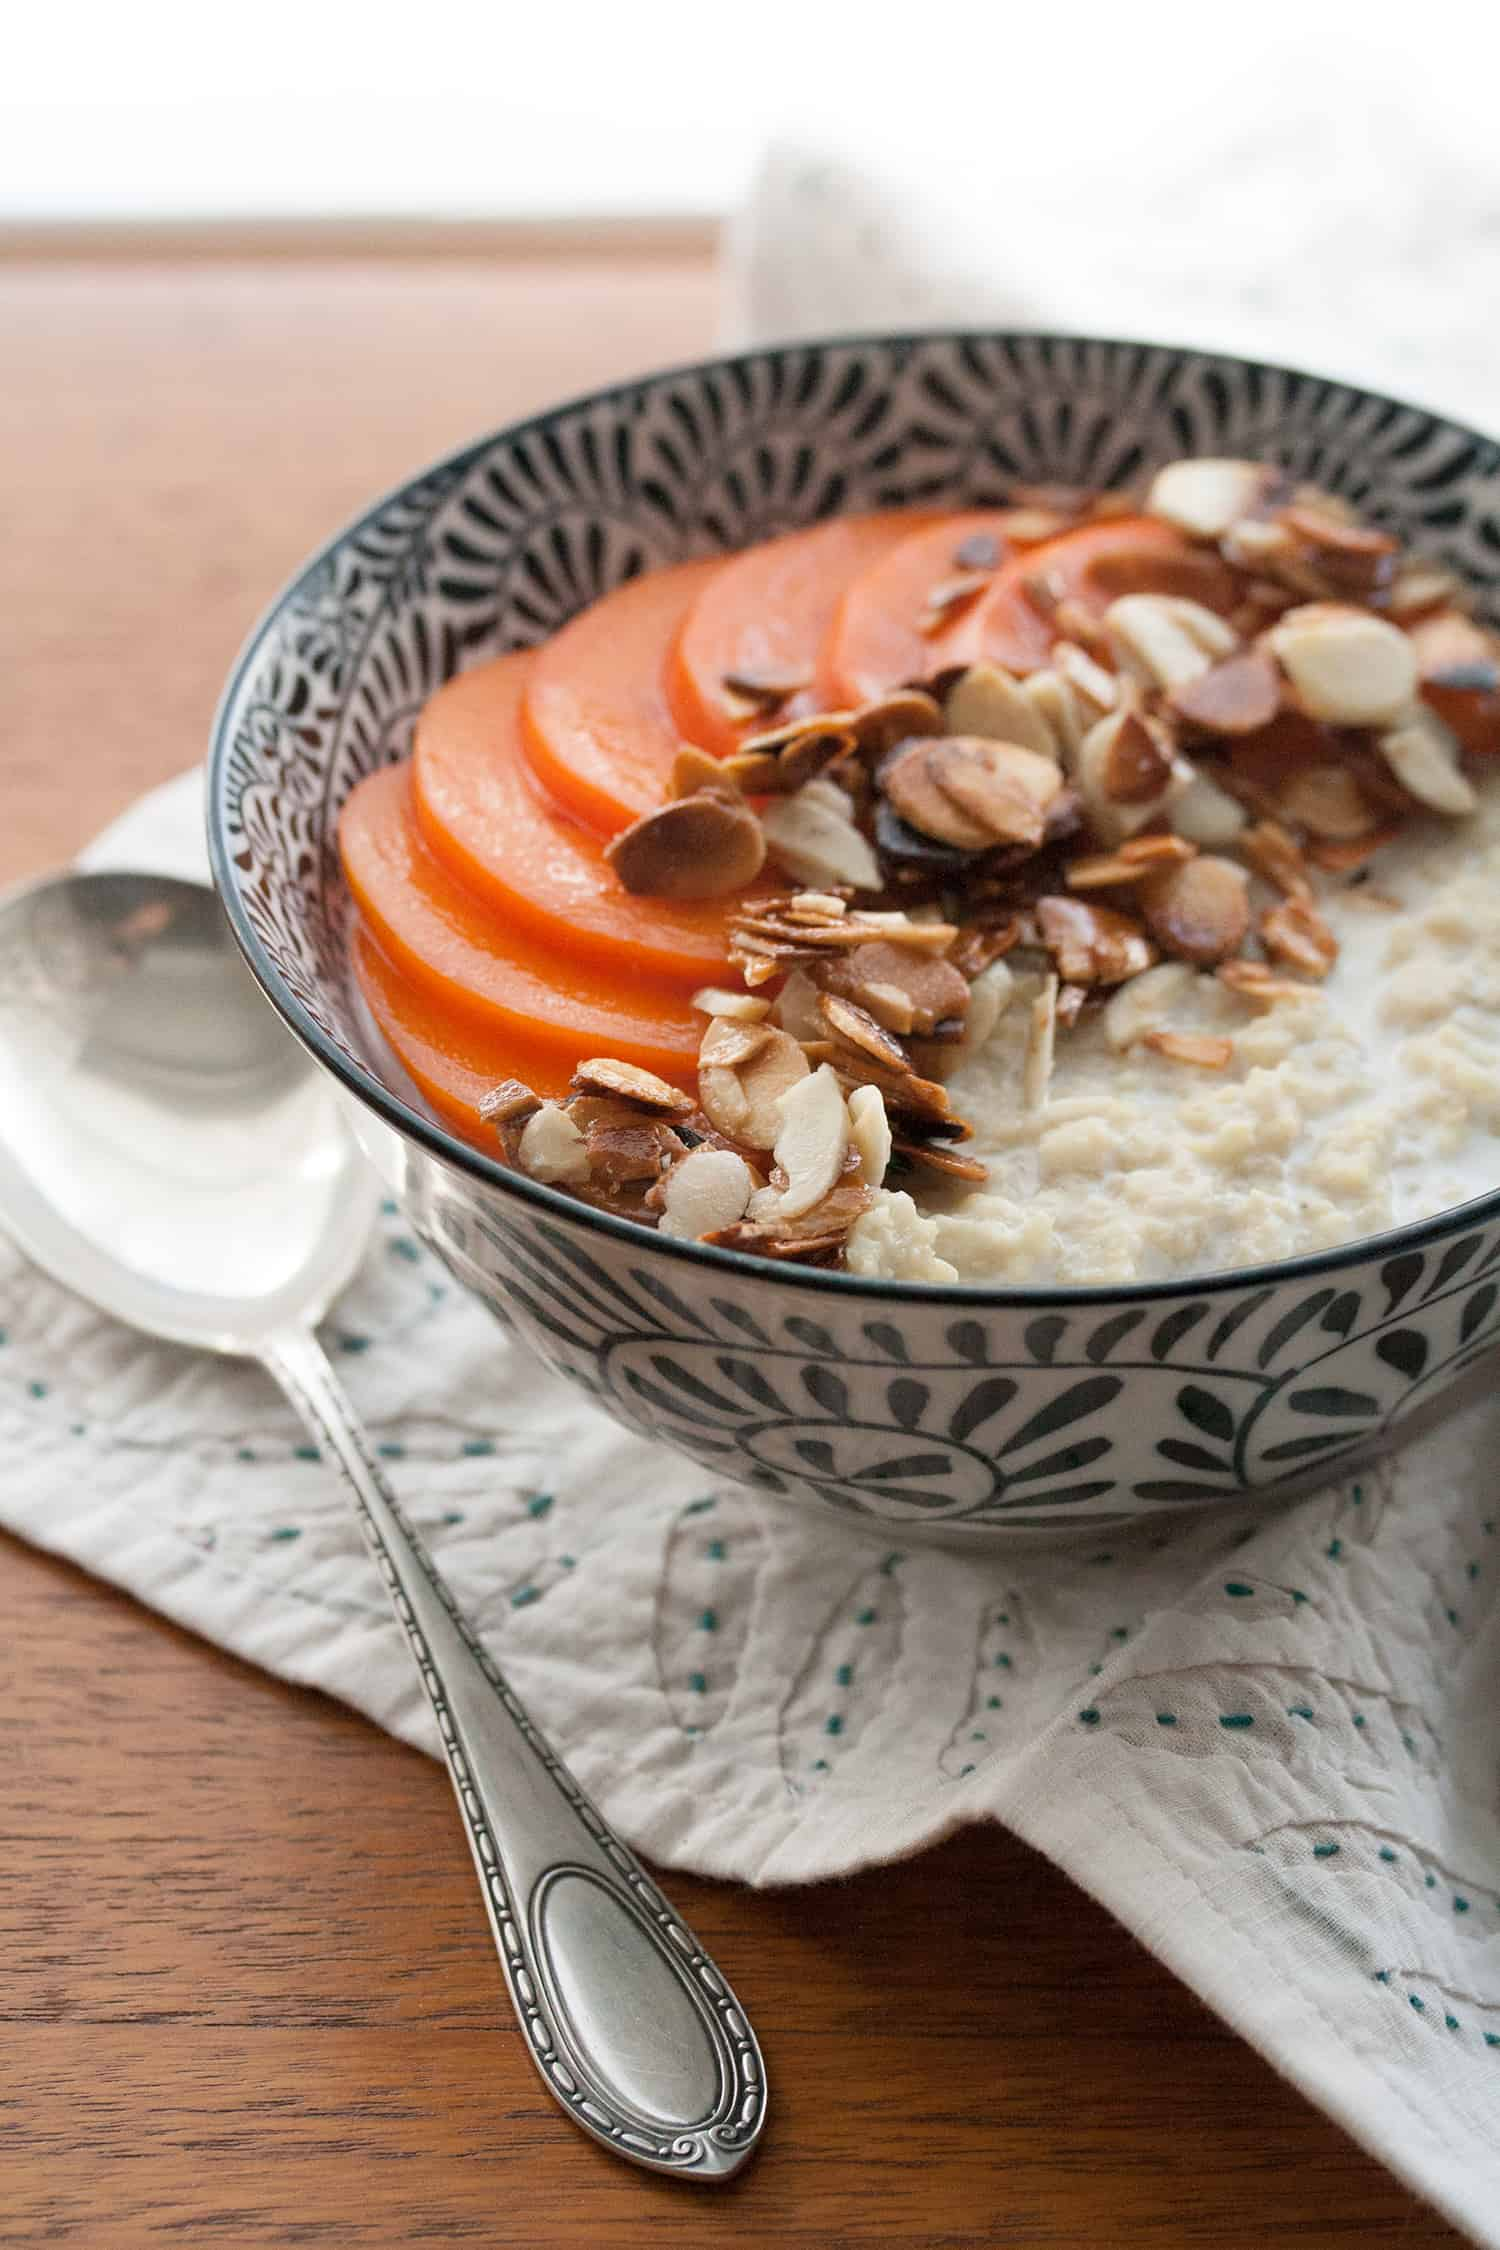 New Leaf: Creamy Millet Porridge with Persimmons and Toasted Almonds